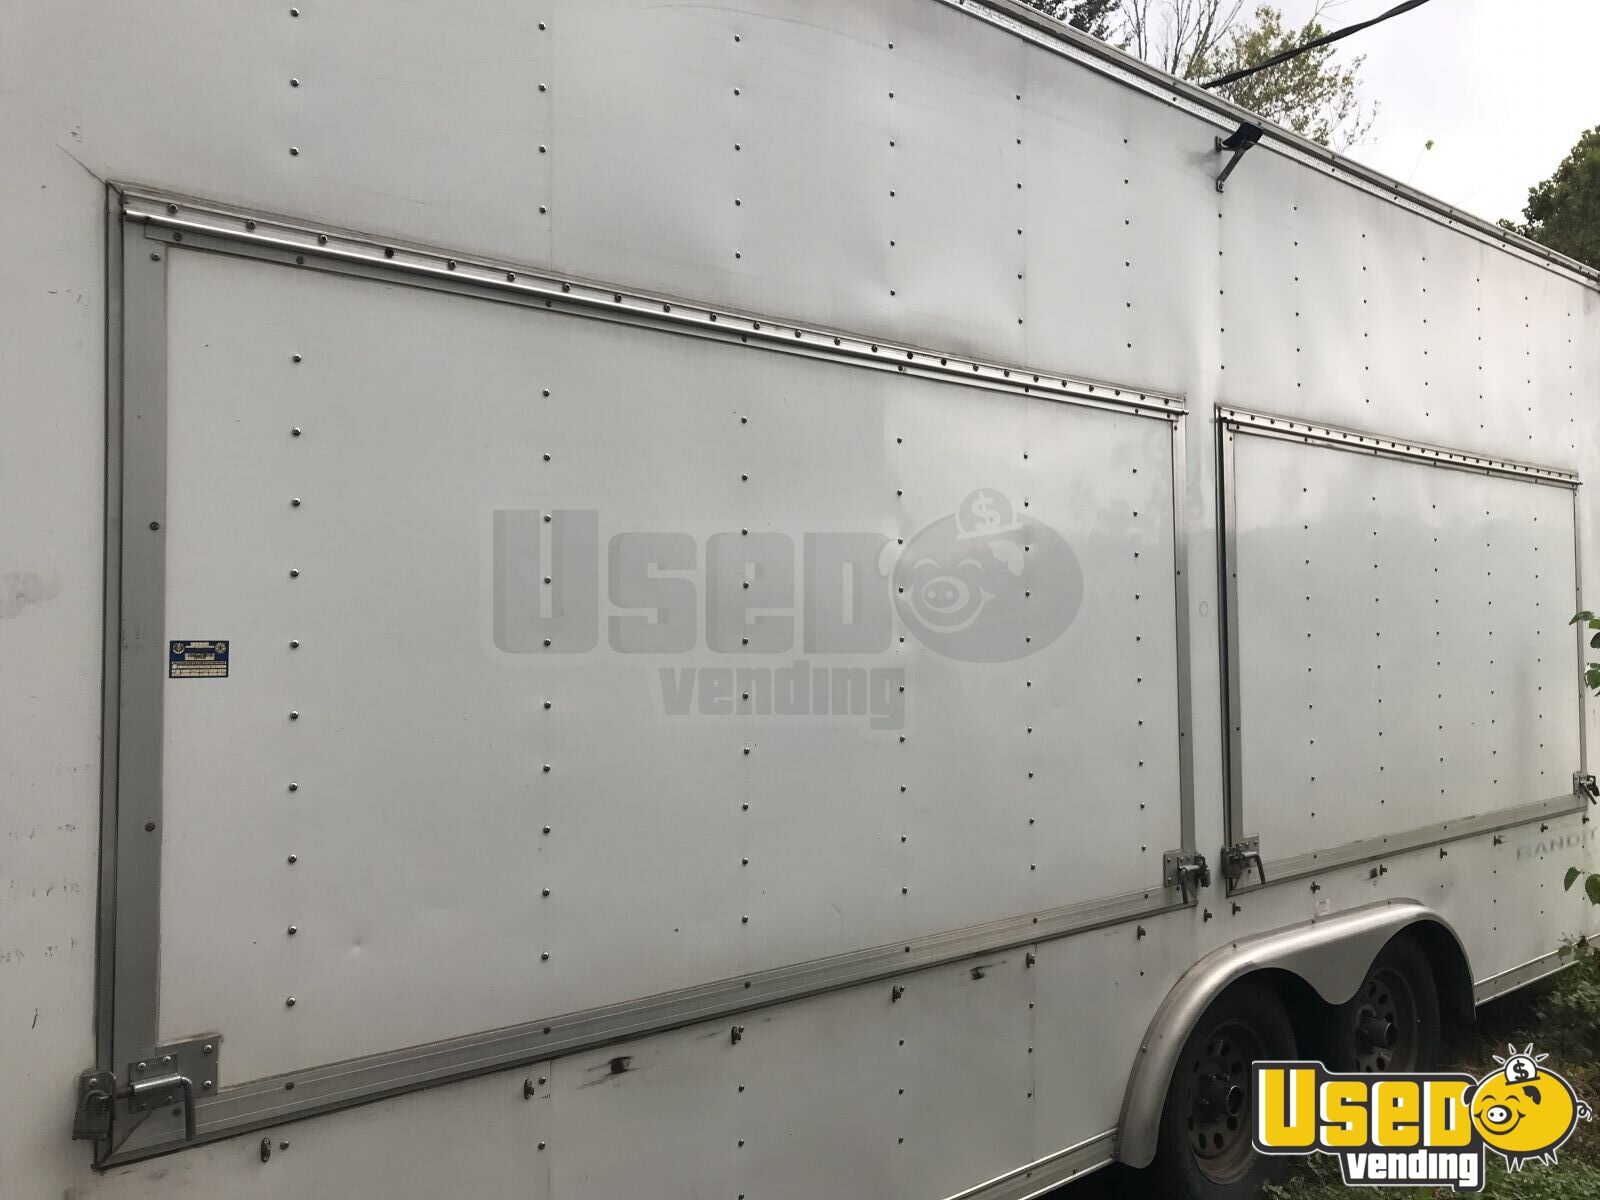 2006 Vintage 30ft Other Mobile Business Concession Window Texas for Sale - 2